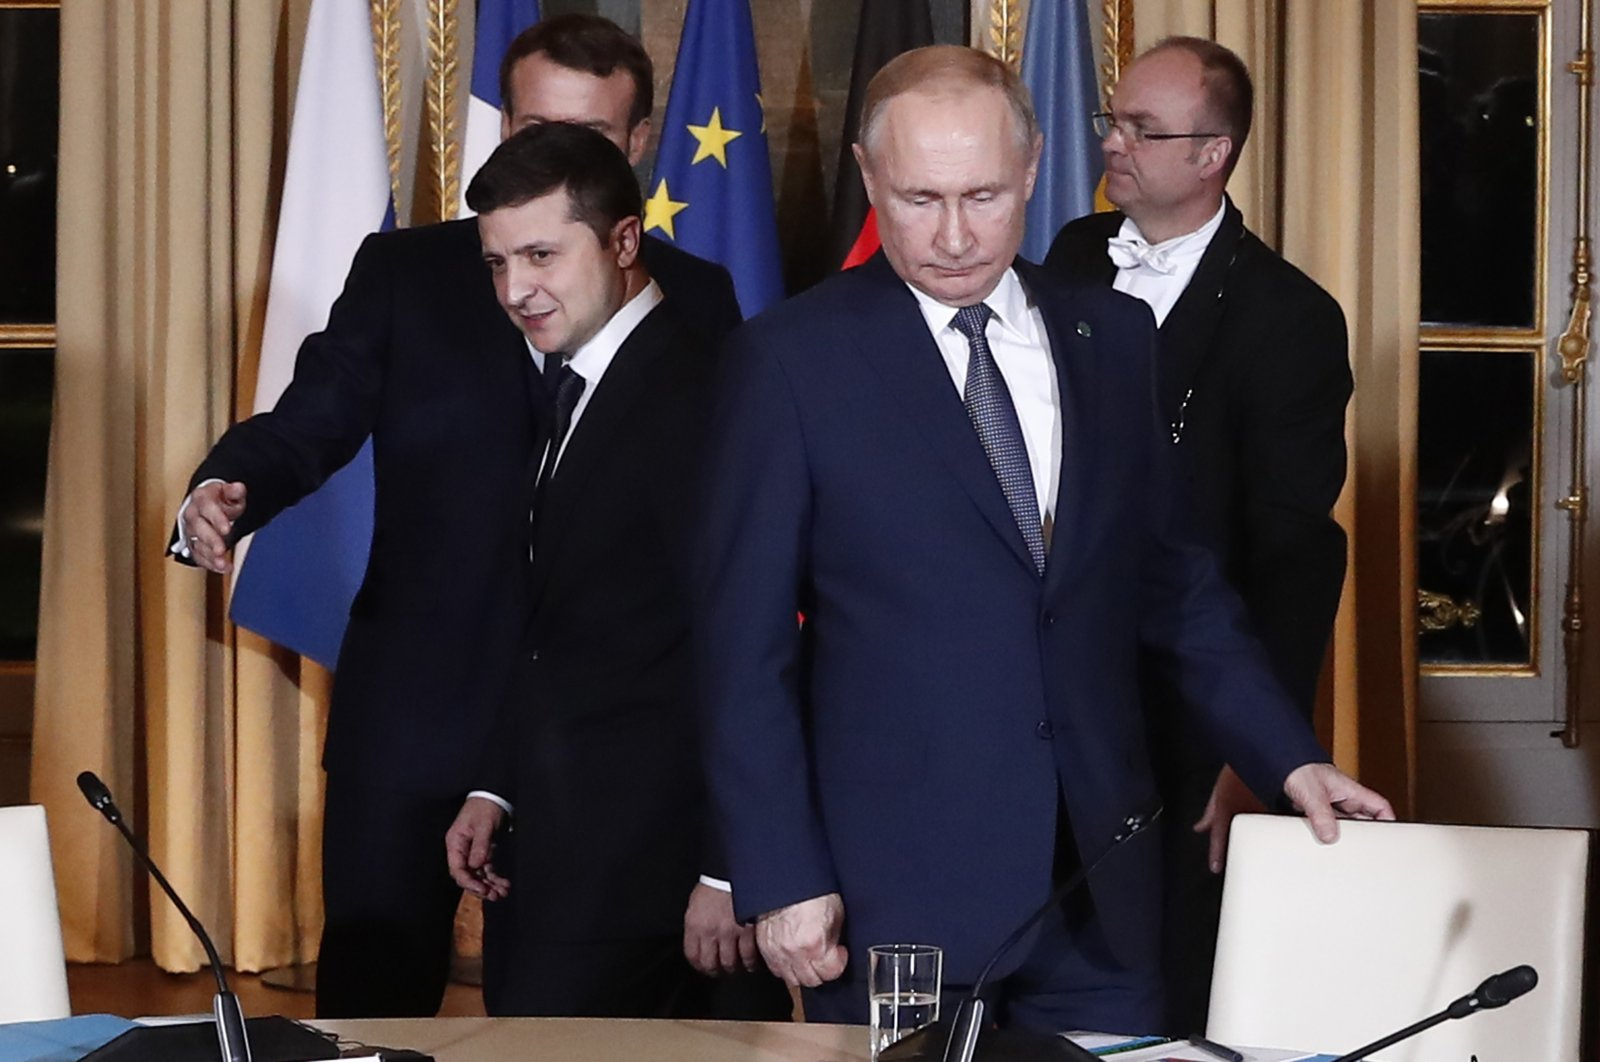 Russian President Vladimir Putin (R) and Ukrainian President Volodymyr Zelenskiy arrive for a working session at the Elysee Palace, Paris, France, Dec. 9, 2019. (AP Photo)